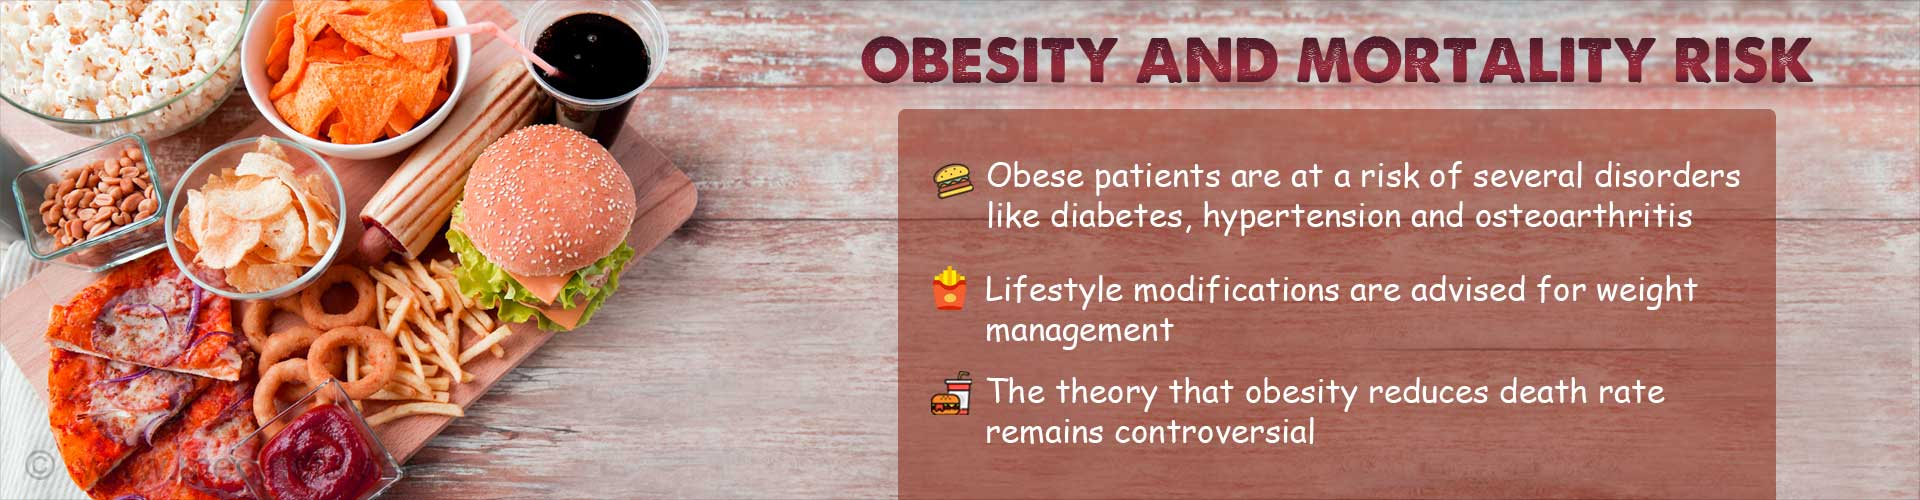 The Obesity-Mortality Paradox Re-visited